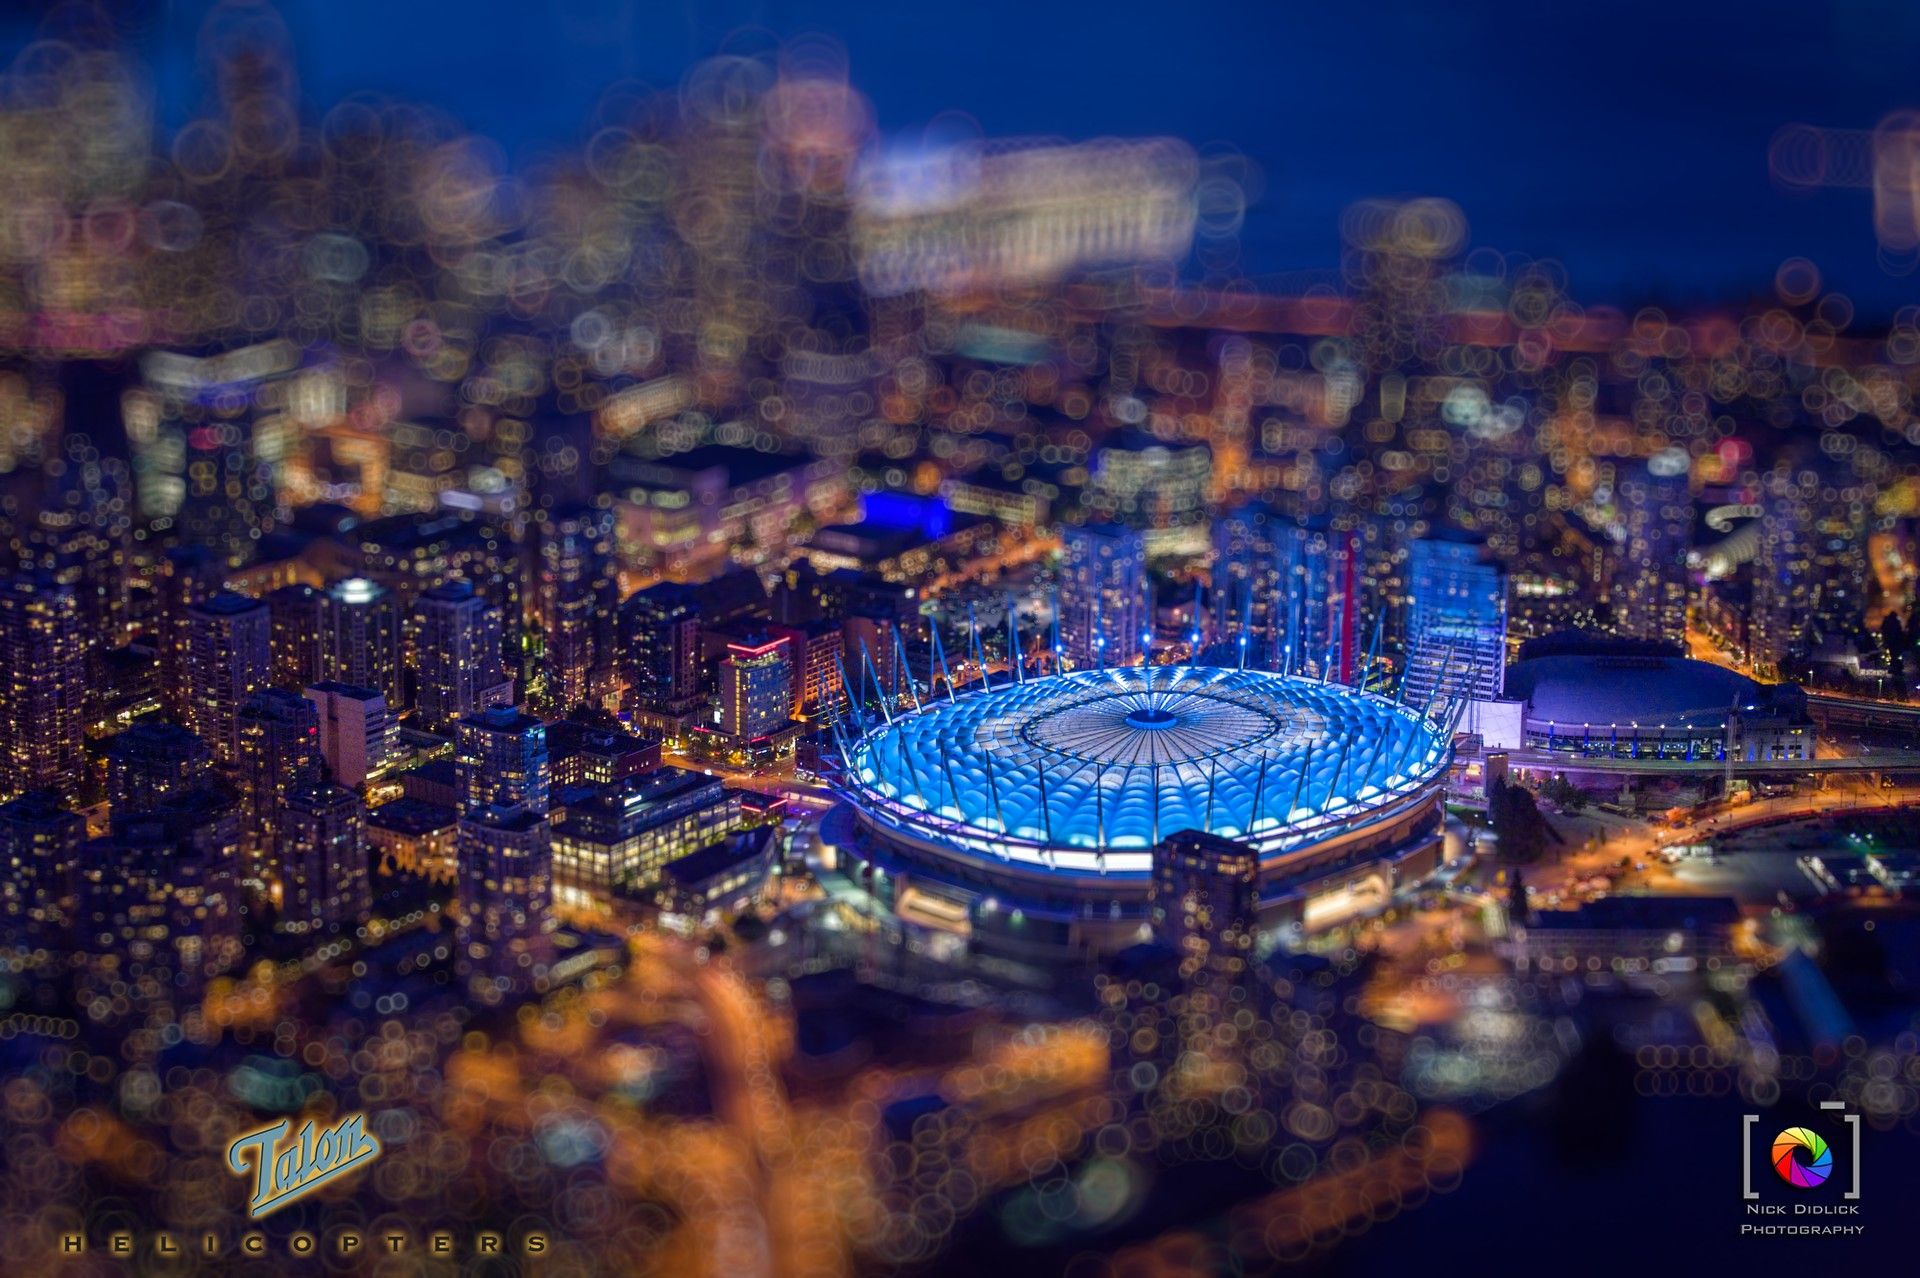 Over Vancouver aerial photography with @taloncopters and @visualmediaproducer around the City of Vancouver, British Columbia, Canada